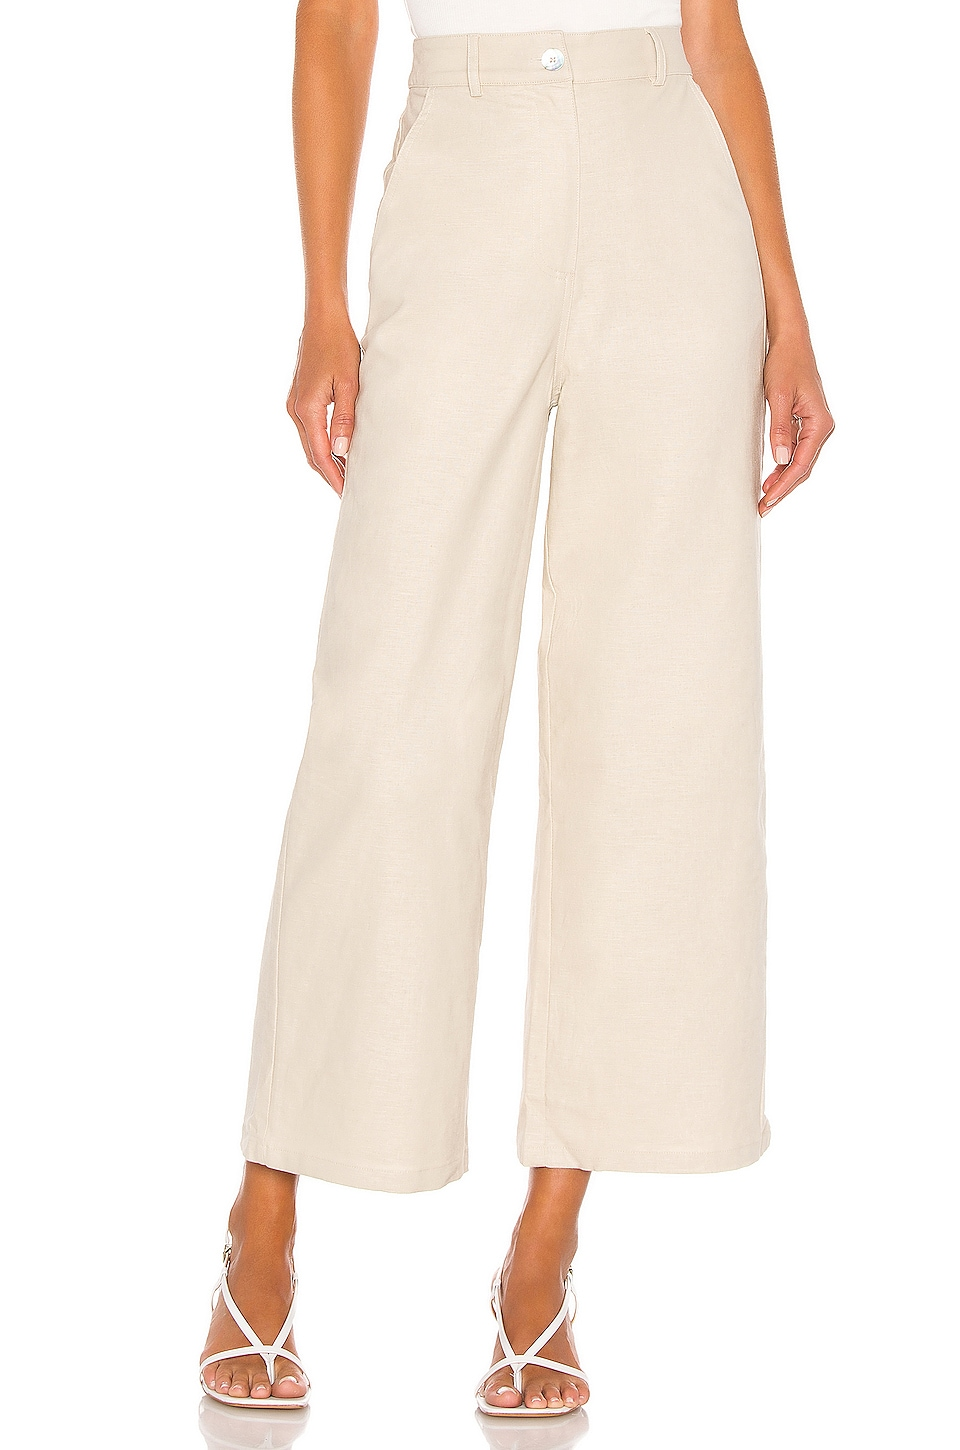 Privacy Please Belmont Pant in Natural Tan